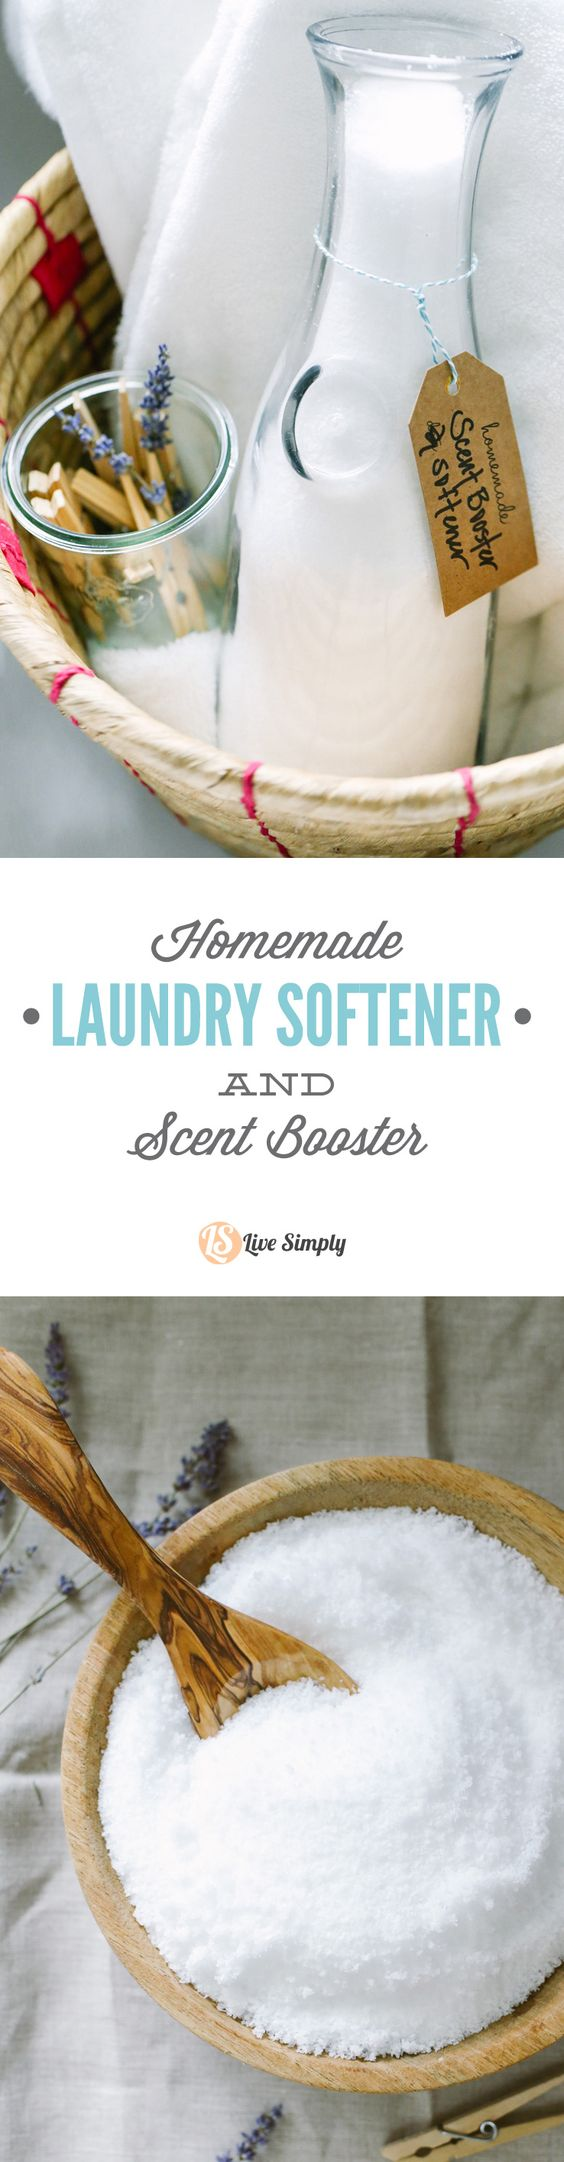 A two-ingredient, homemade fabric softener and scent booster. This stuff is super cheap to make and completely natural.  http://livesimply.me/2015/10/21/homemade-laundry-softener-and-scent-booster/: